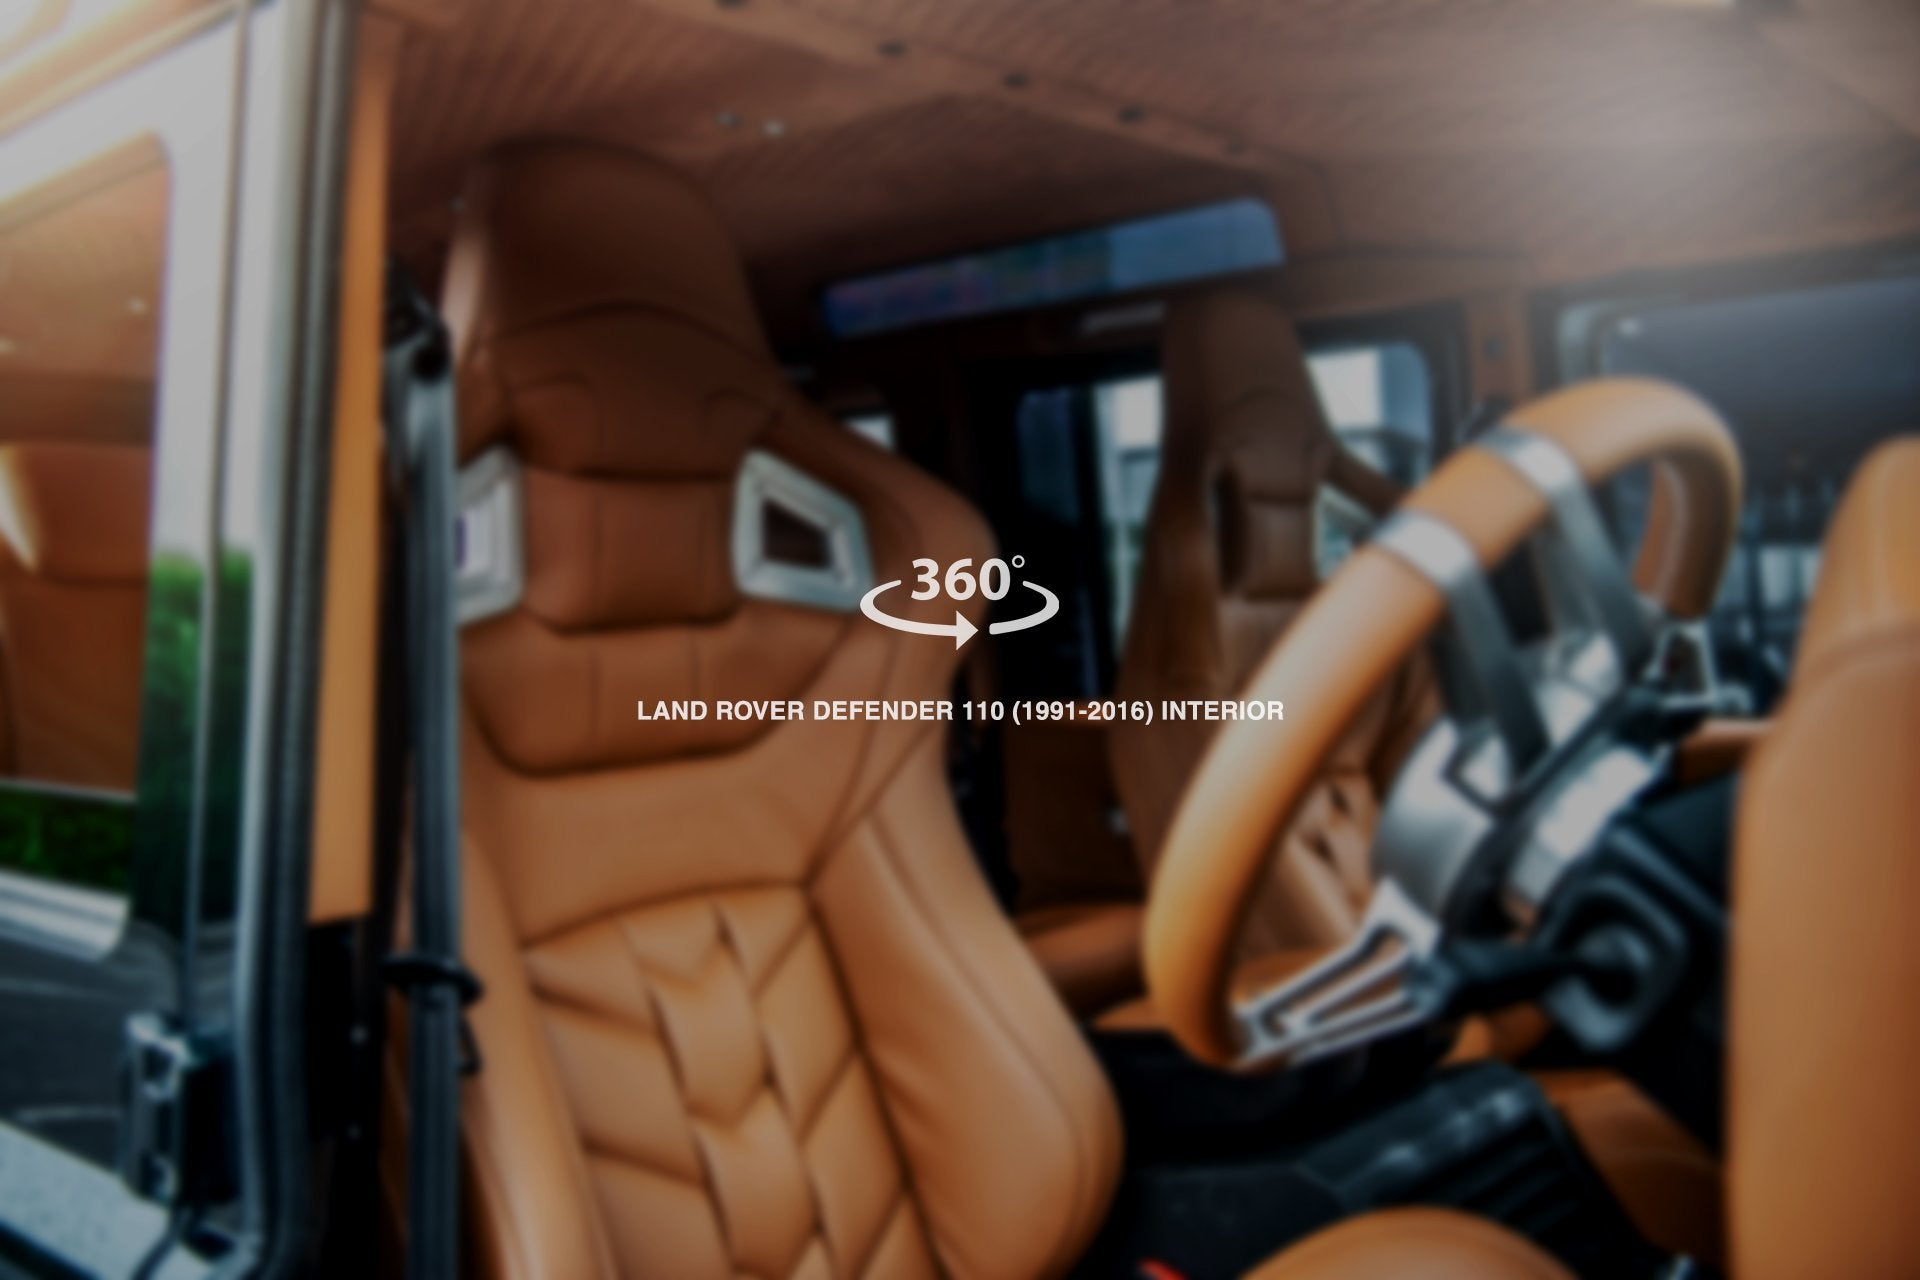 Land Rover Defender 110 (1991-2016) Sports Interior